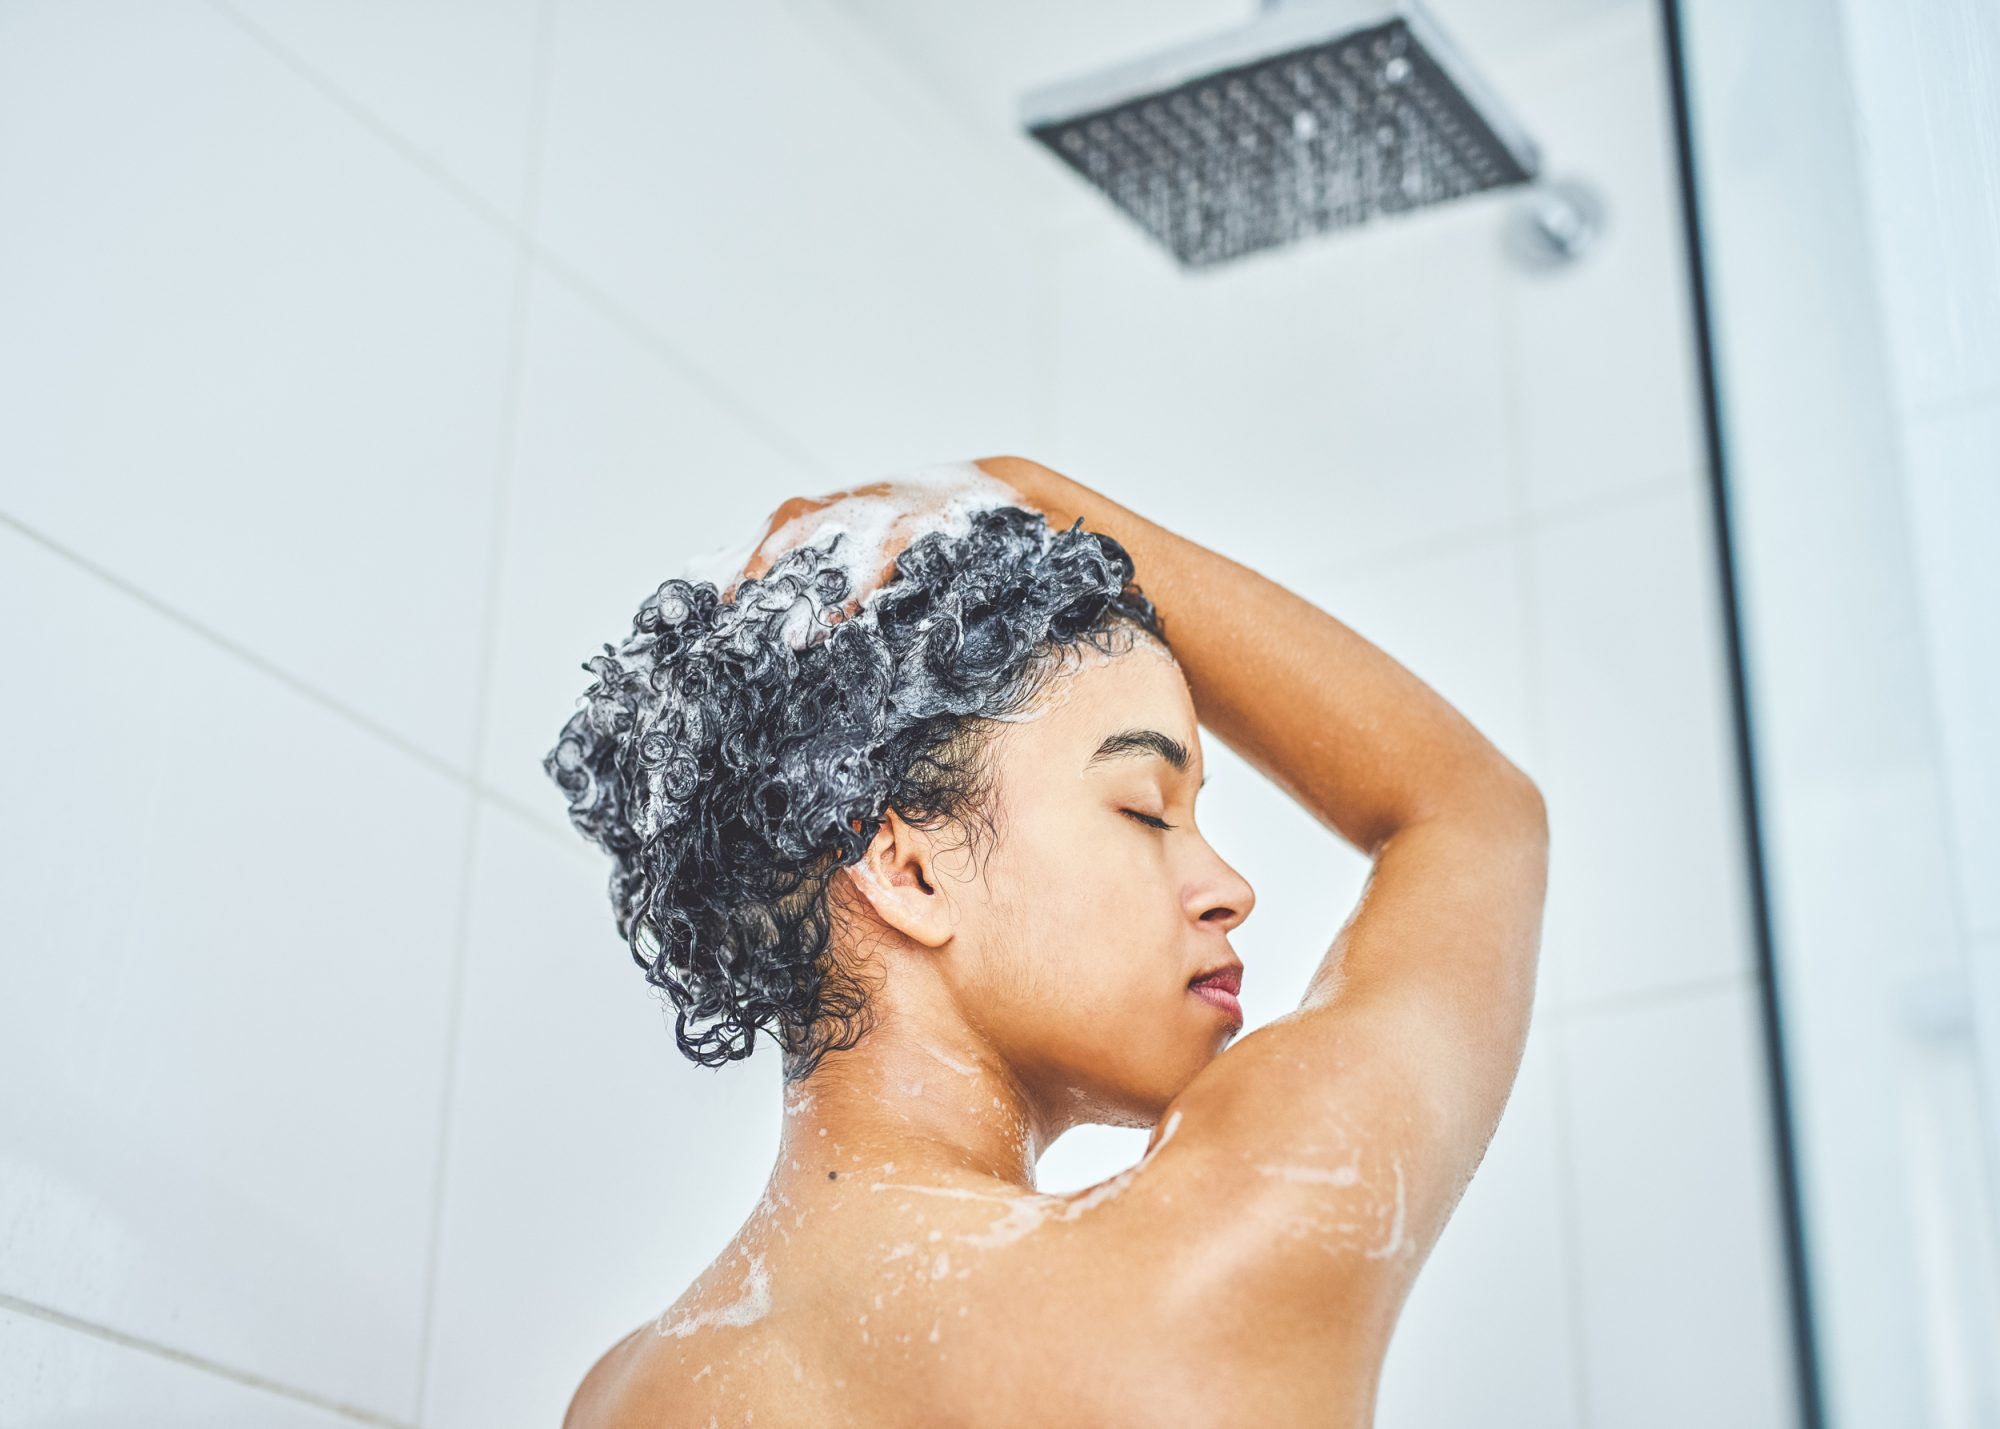 The Best Dandruff Shampoos for a Dry, Flaky Scalp